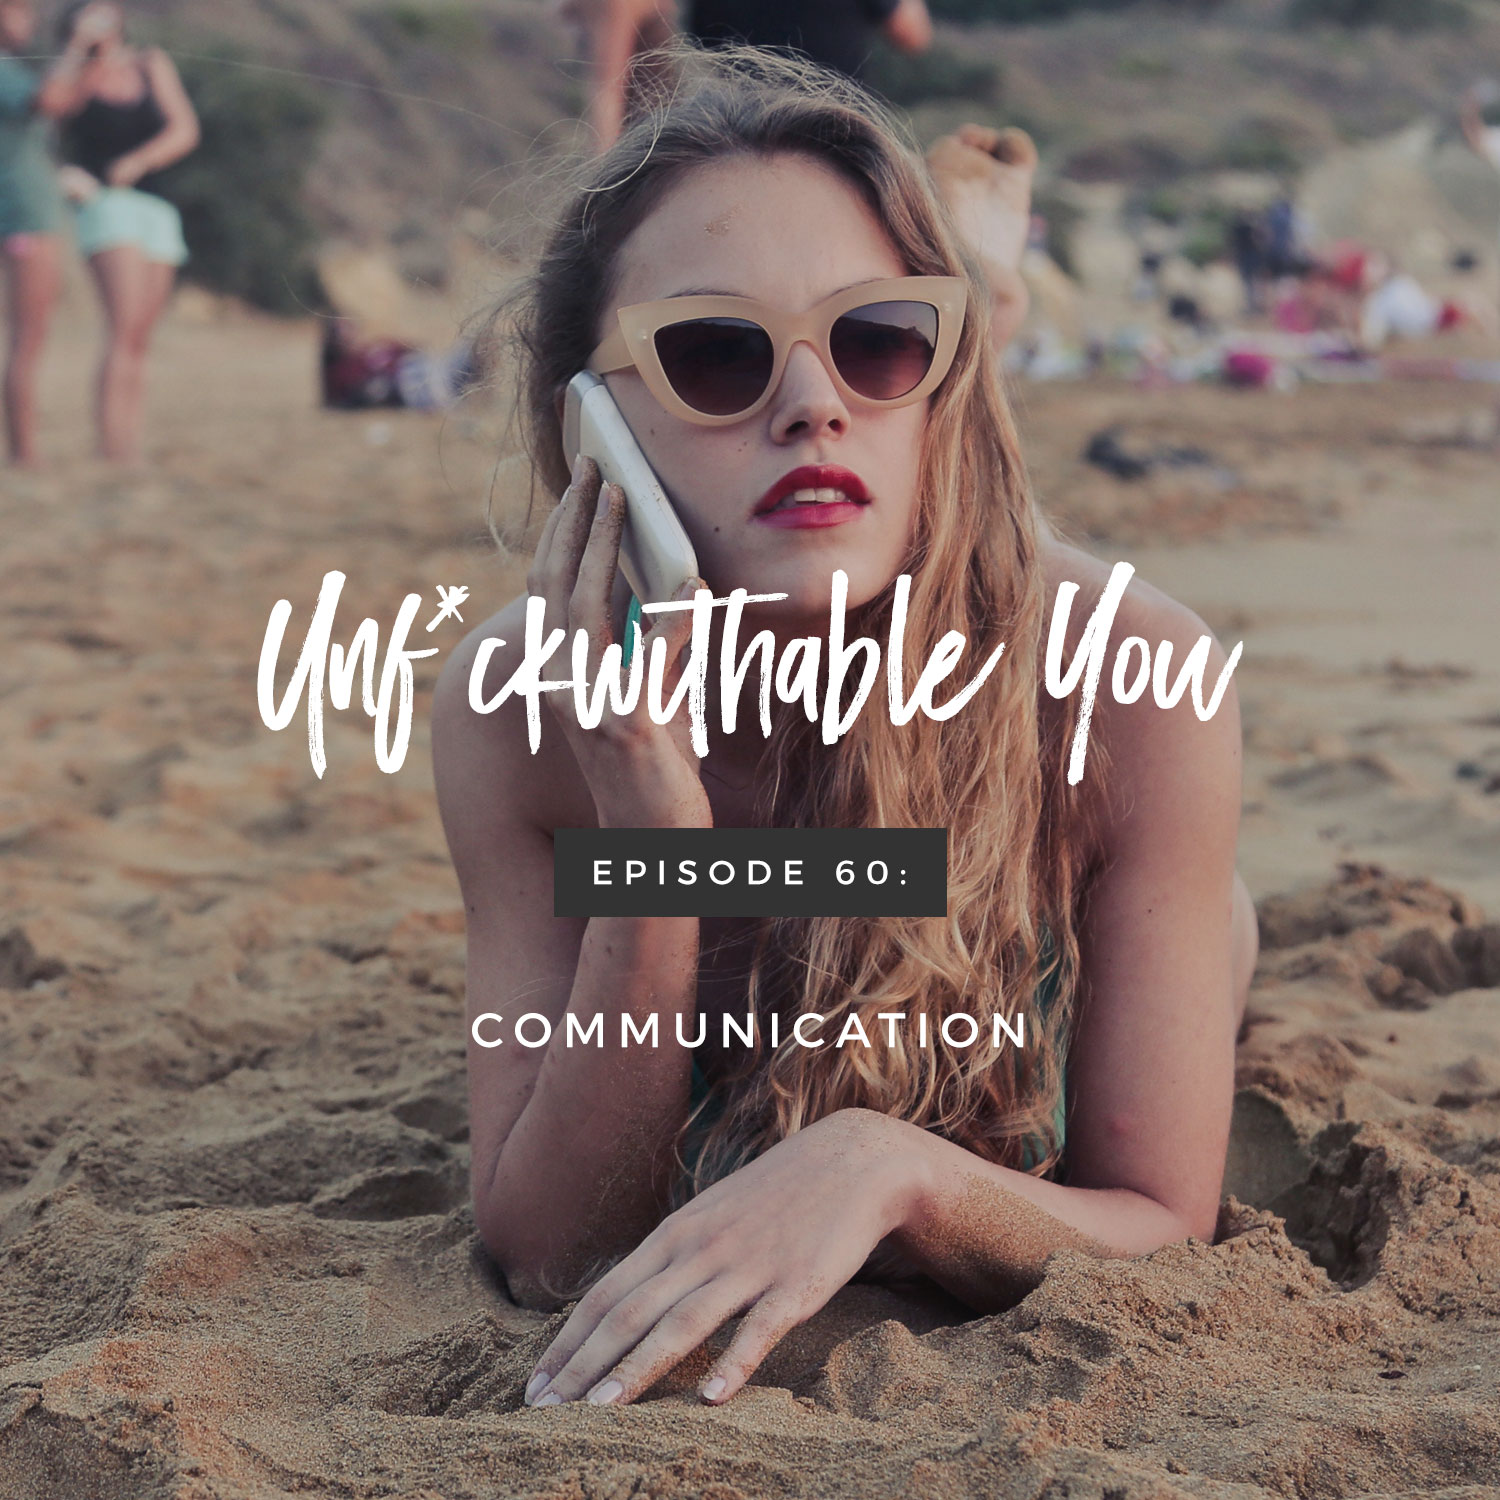 Unf*ckwithable You Episode 60: Communication